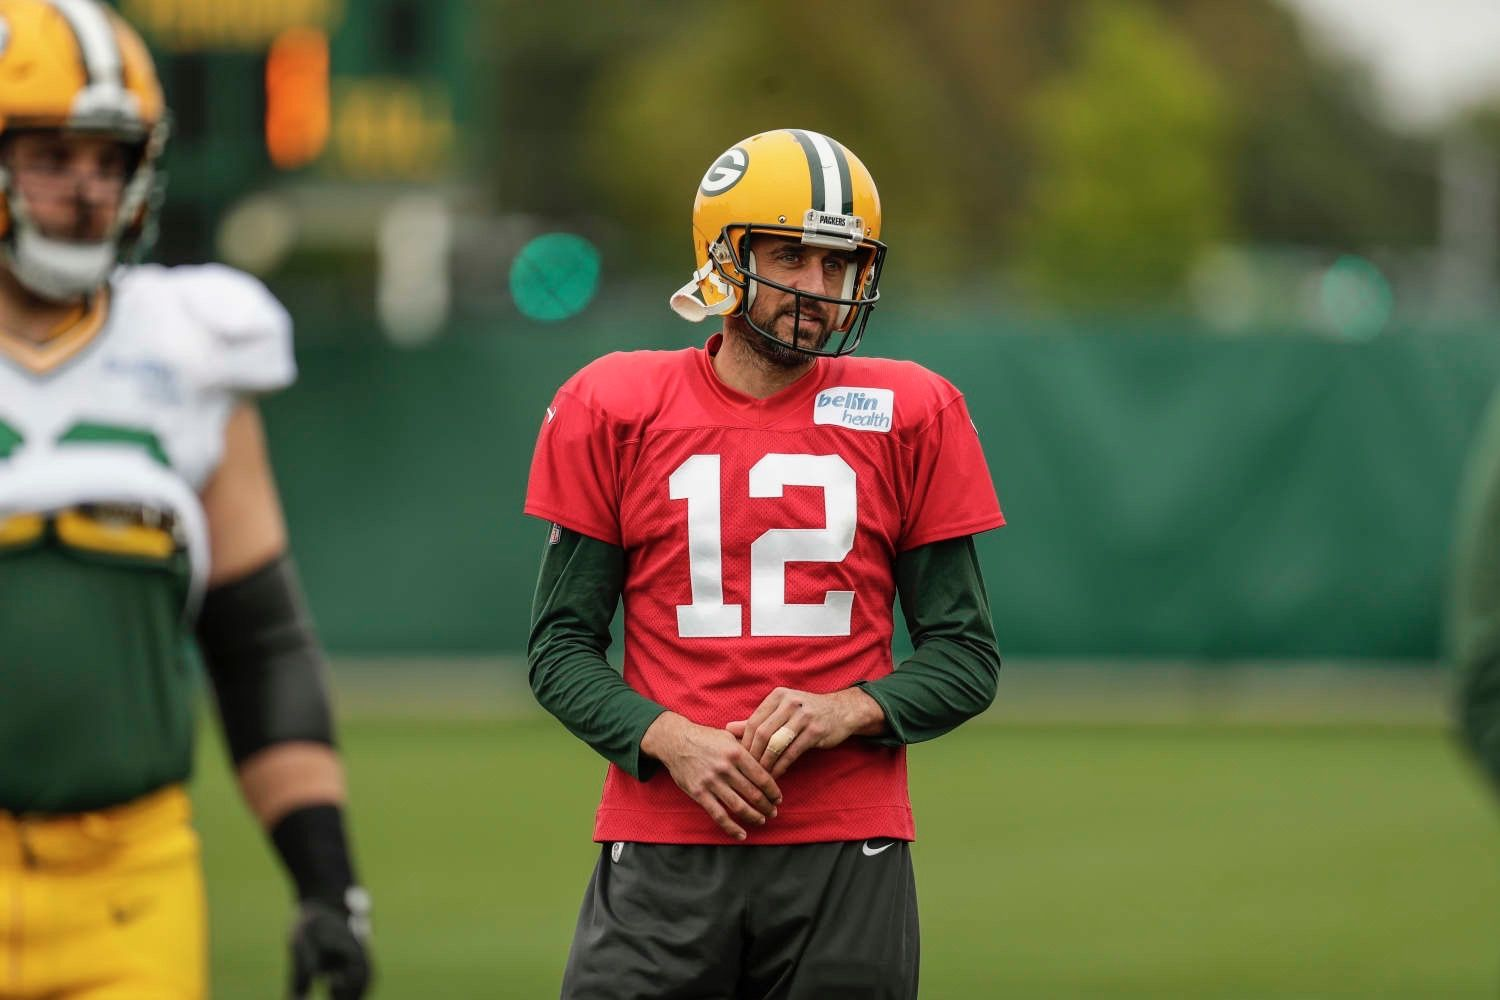 Pin By Suzanne Jackson On Man Crush Man Crush Football Helmets Aaron Rodgers